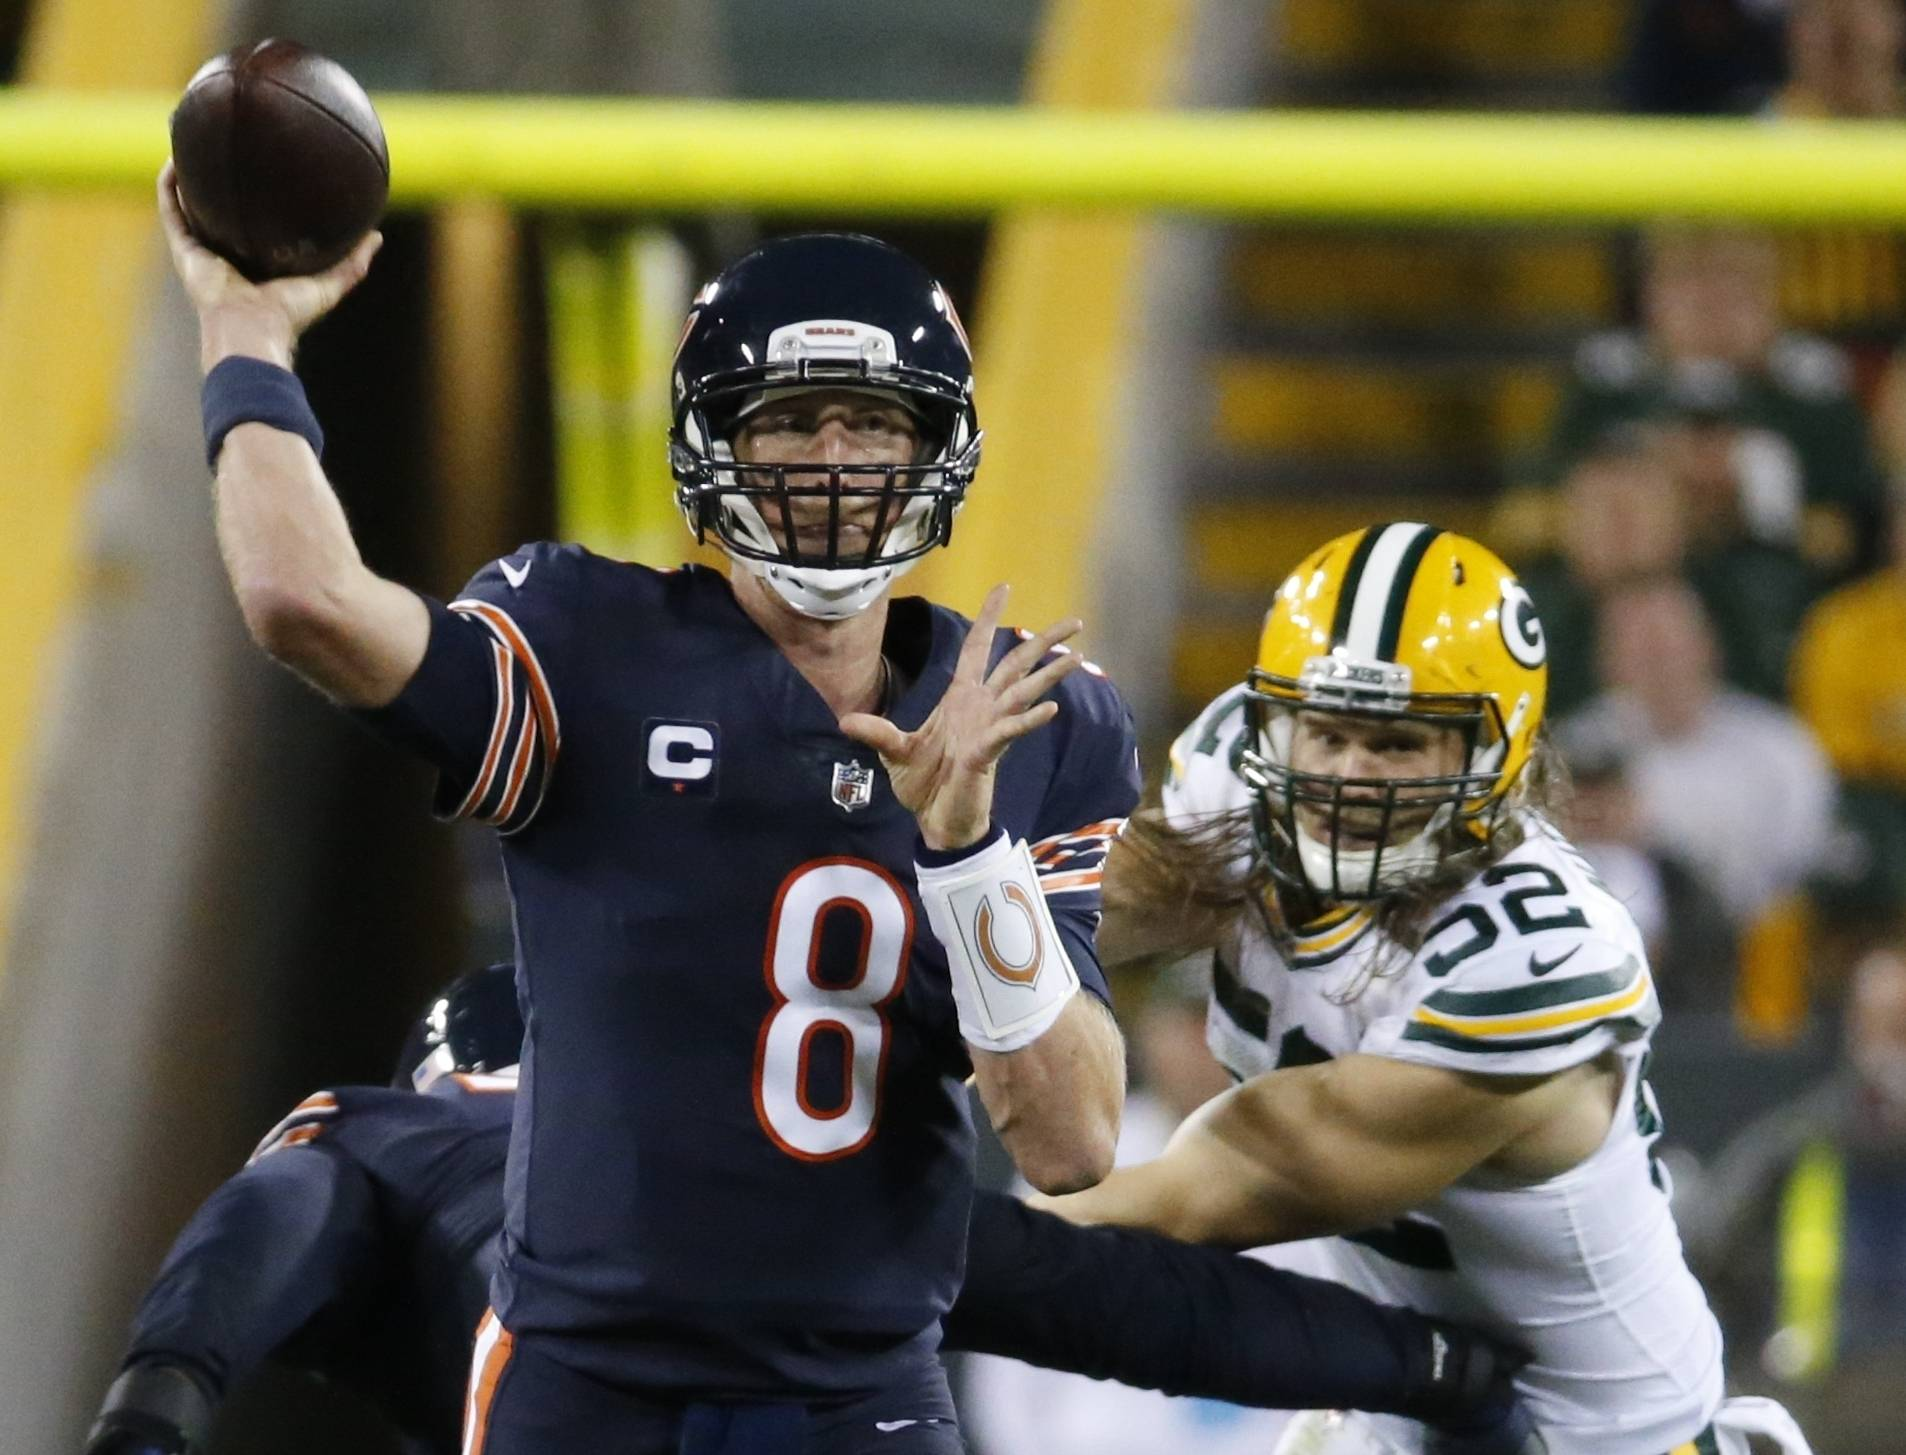 Chicago Bears' Mike Glennon throws in front of Green Bay Packers' Clay Matthews during the second half of an NFL football game Thursday, Sept. 28, 2017, in Green Bay, Wis.